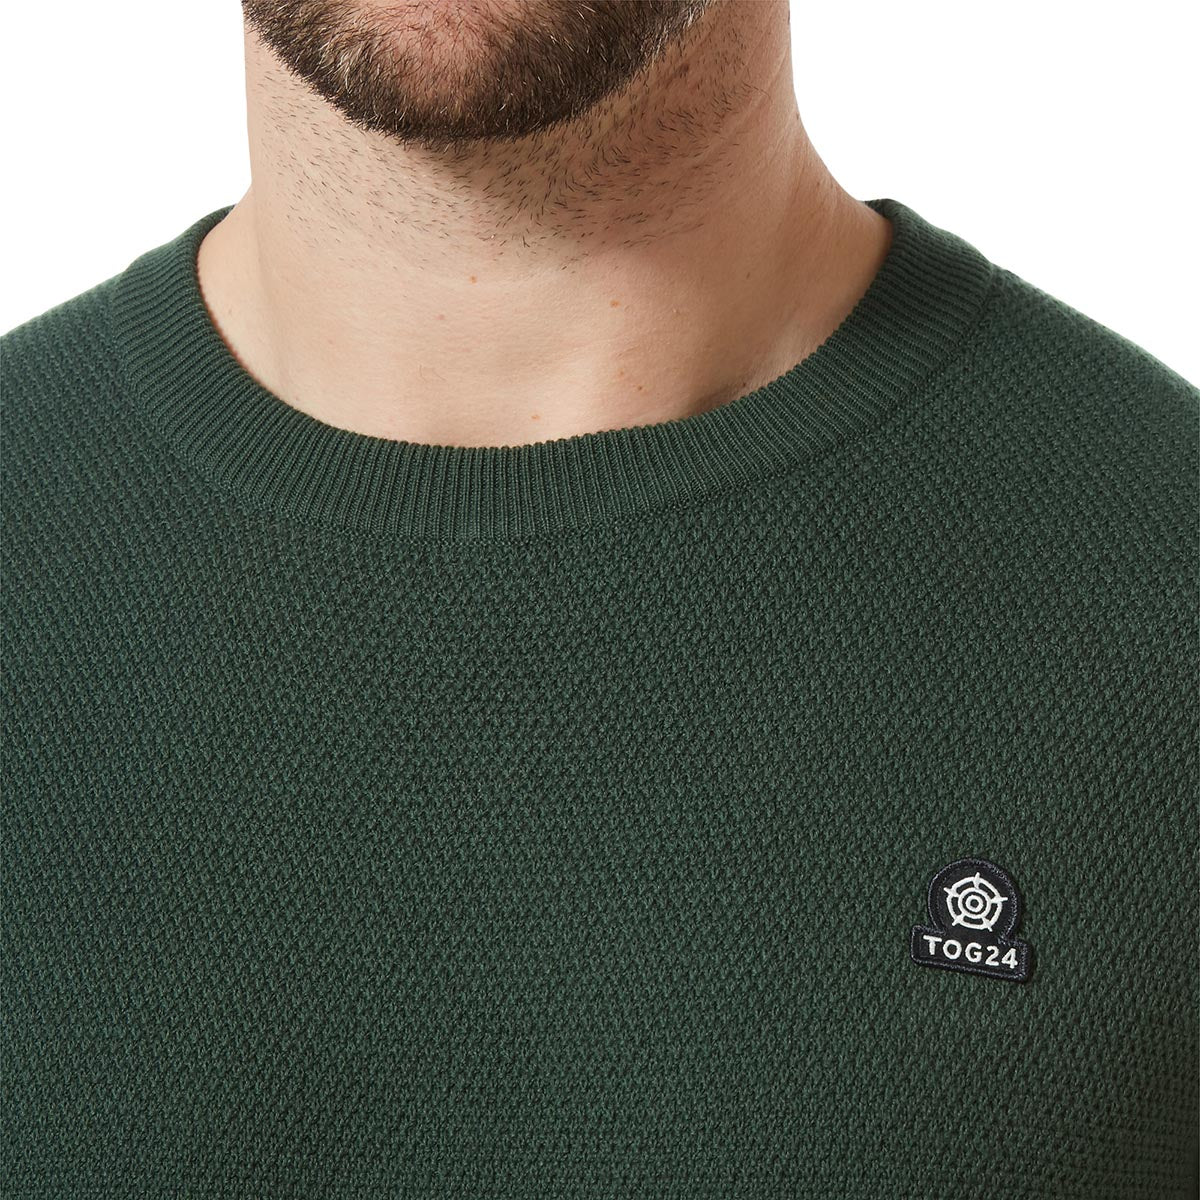 Turner Mens Cotton Crew Neck Jumper - Forest Green image 4